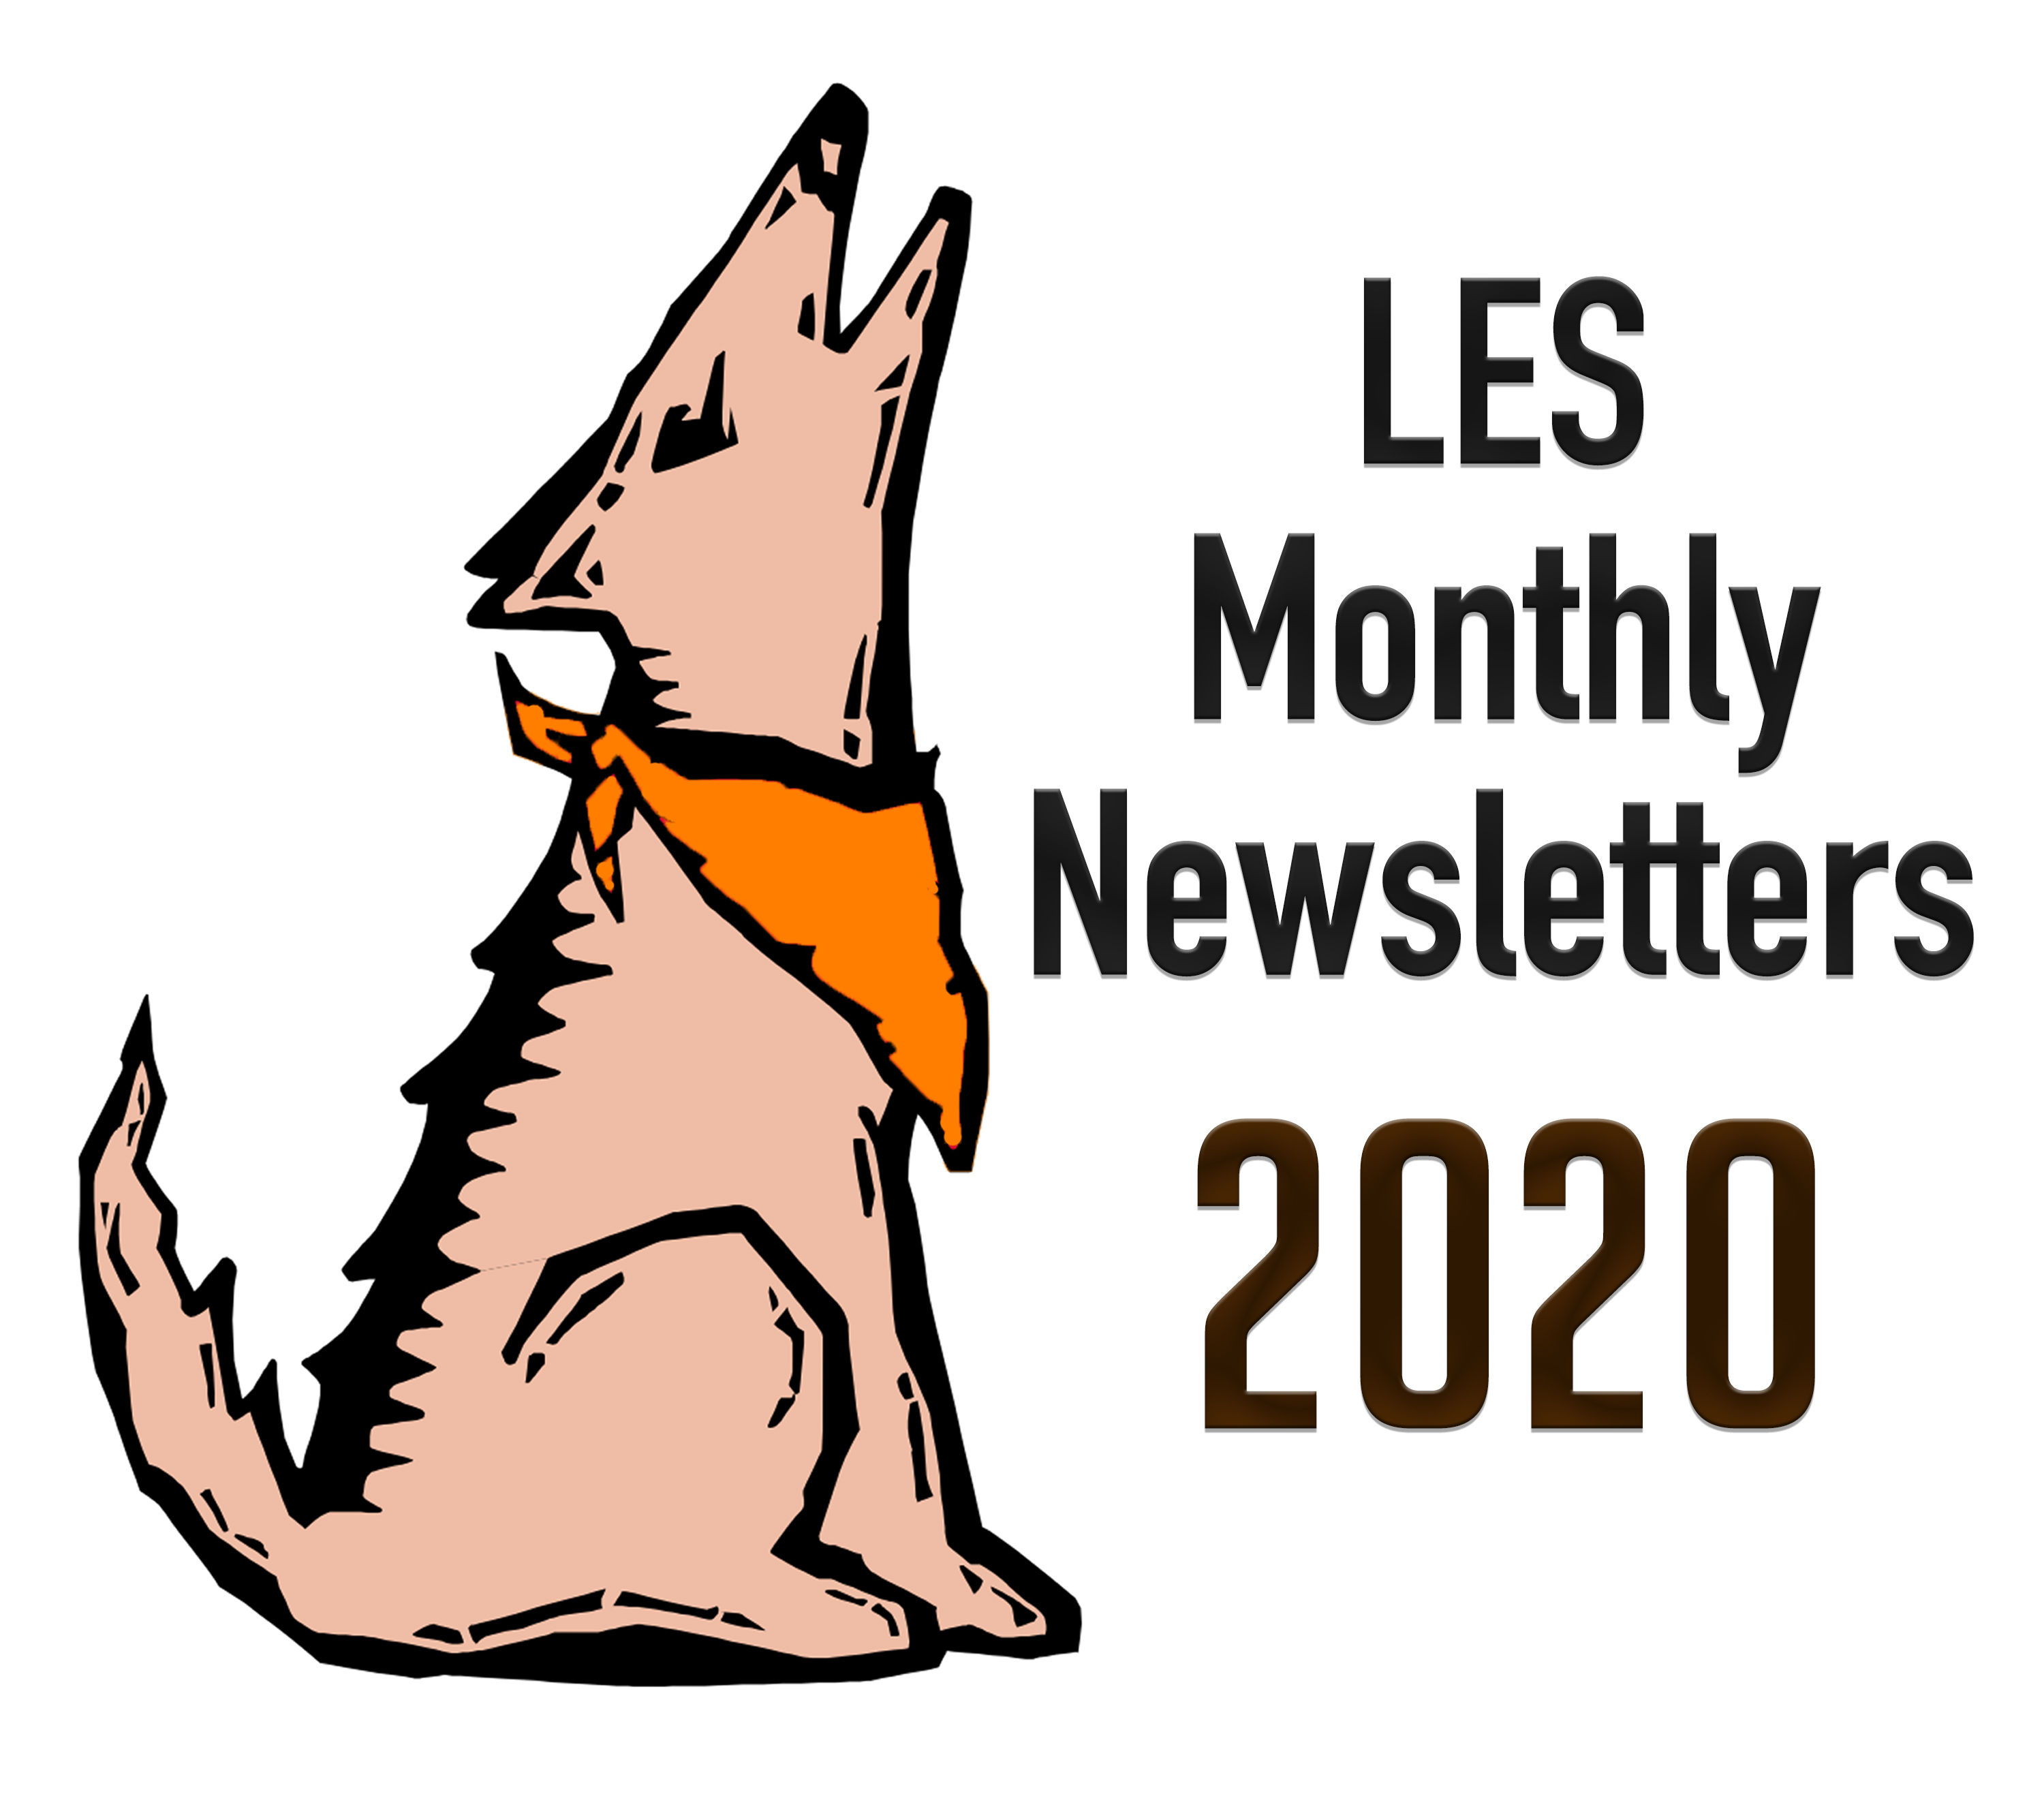 LES Monthly Newsletters 2020